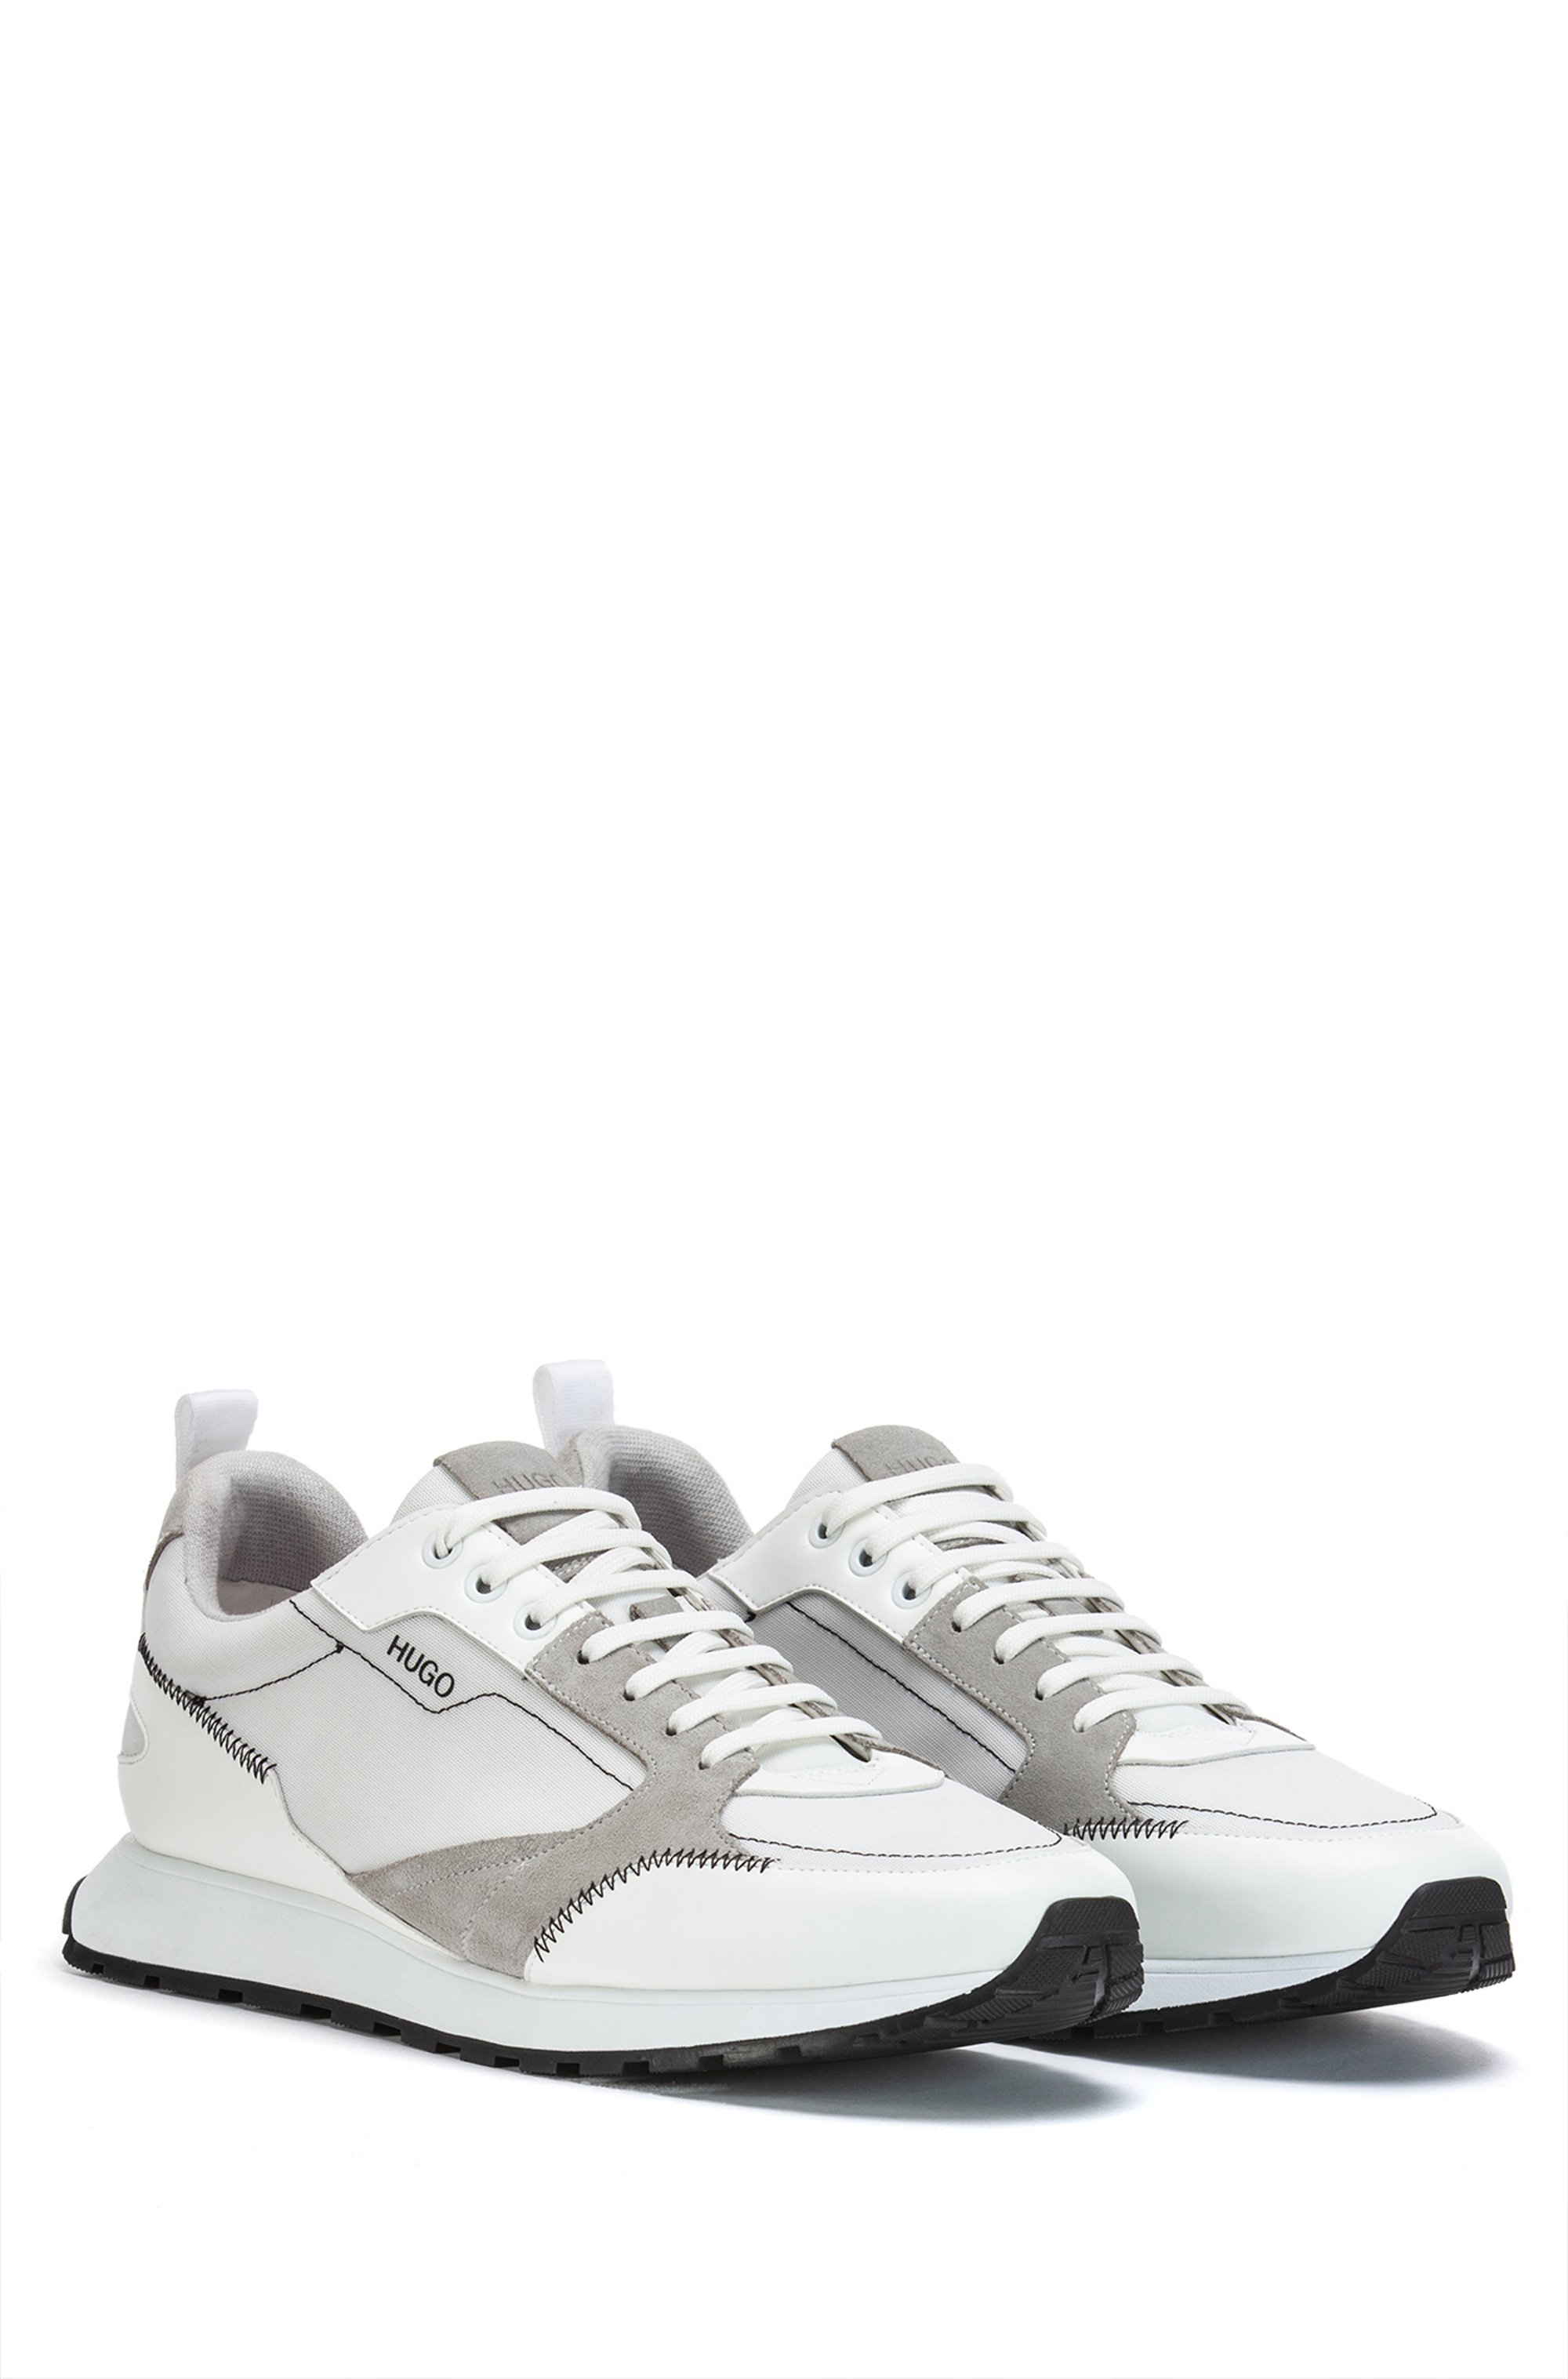 Retro-inspired trainers with mesh and suede